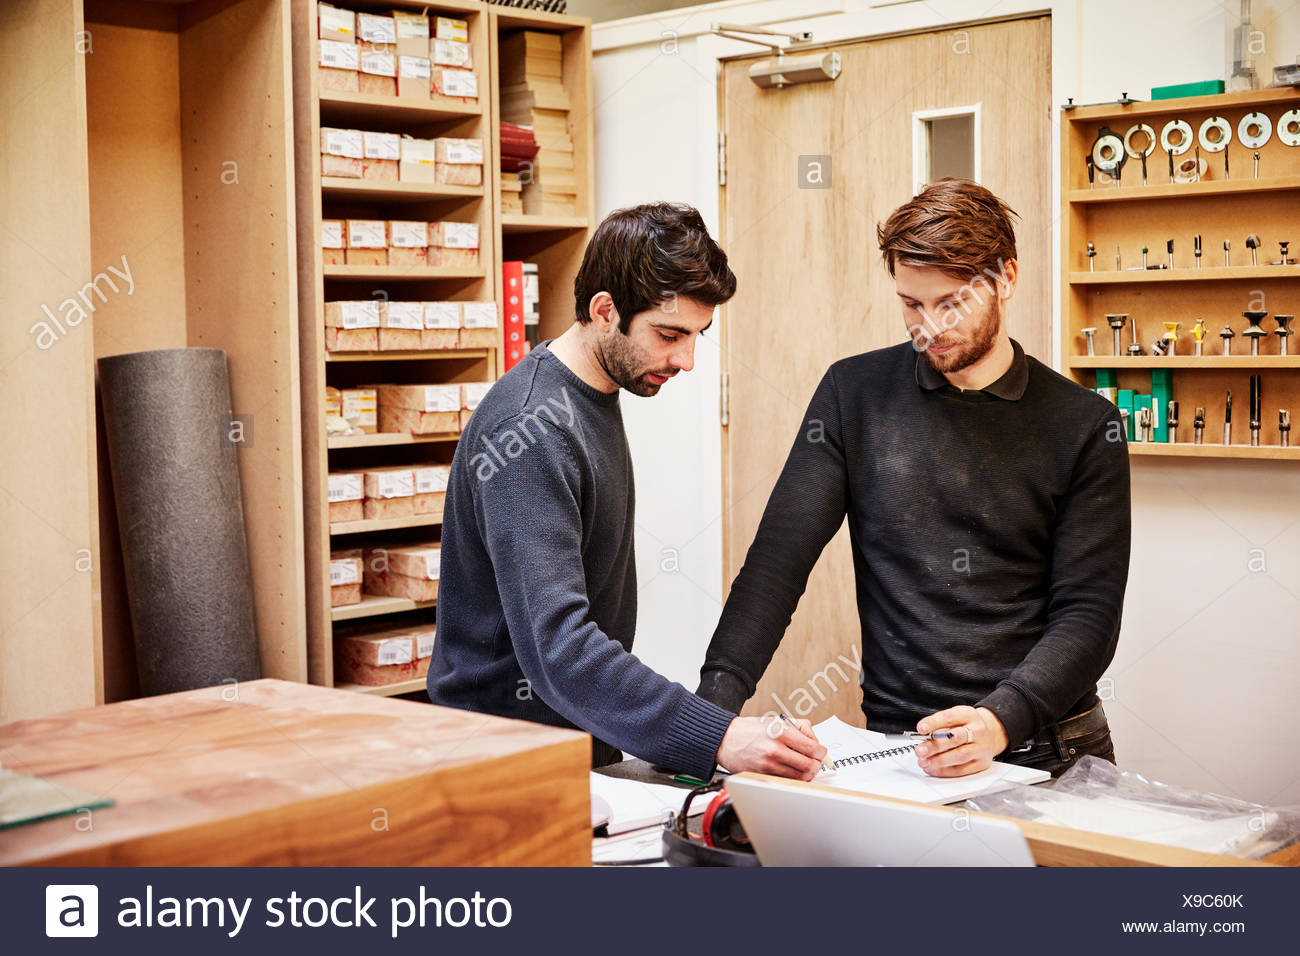 a furniture workshop two people discussing a design referring to